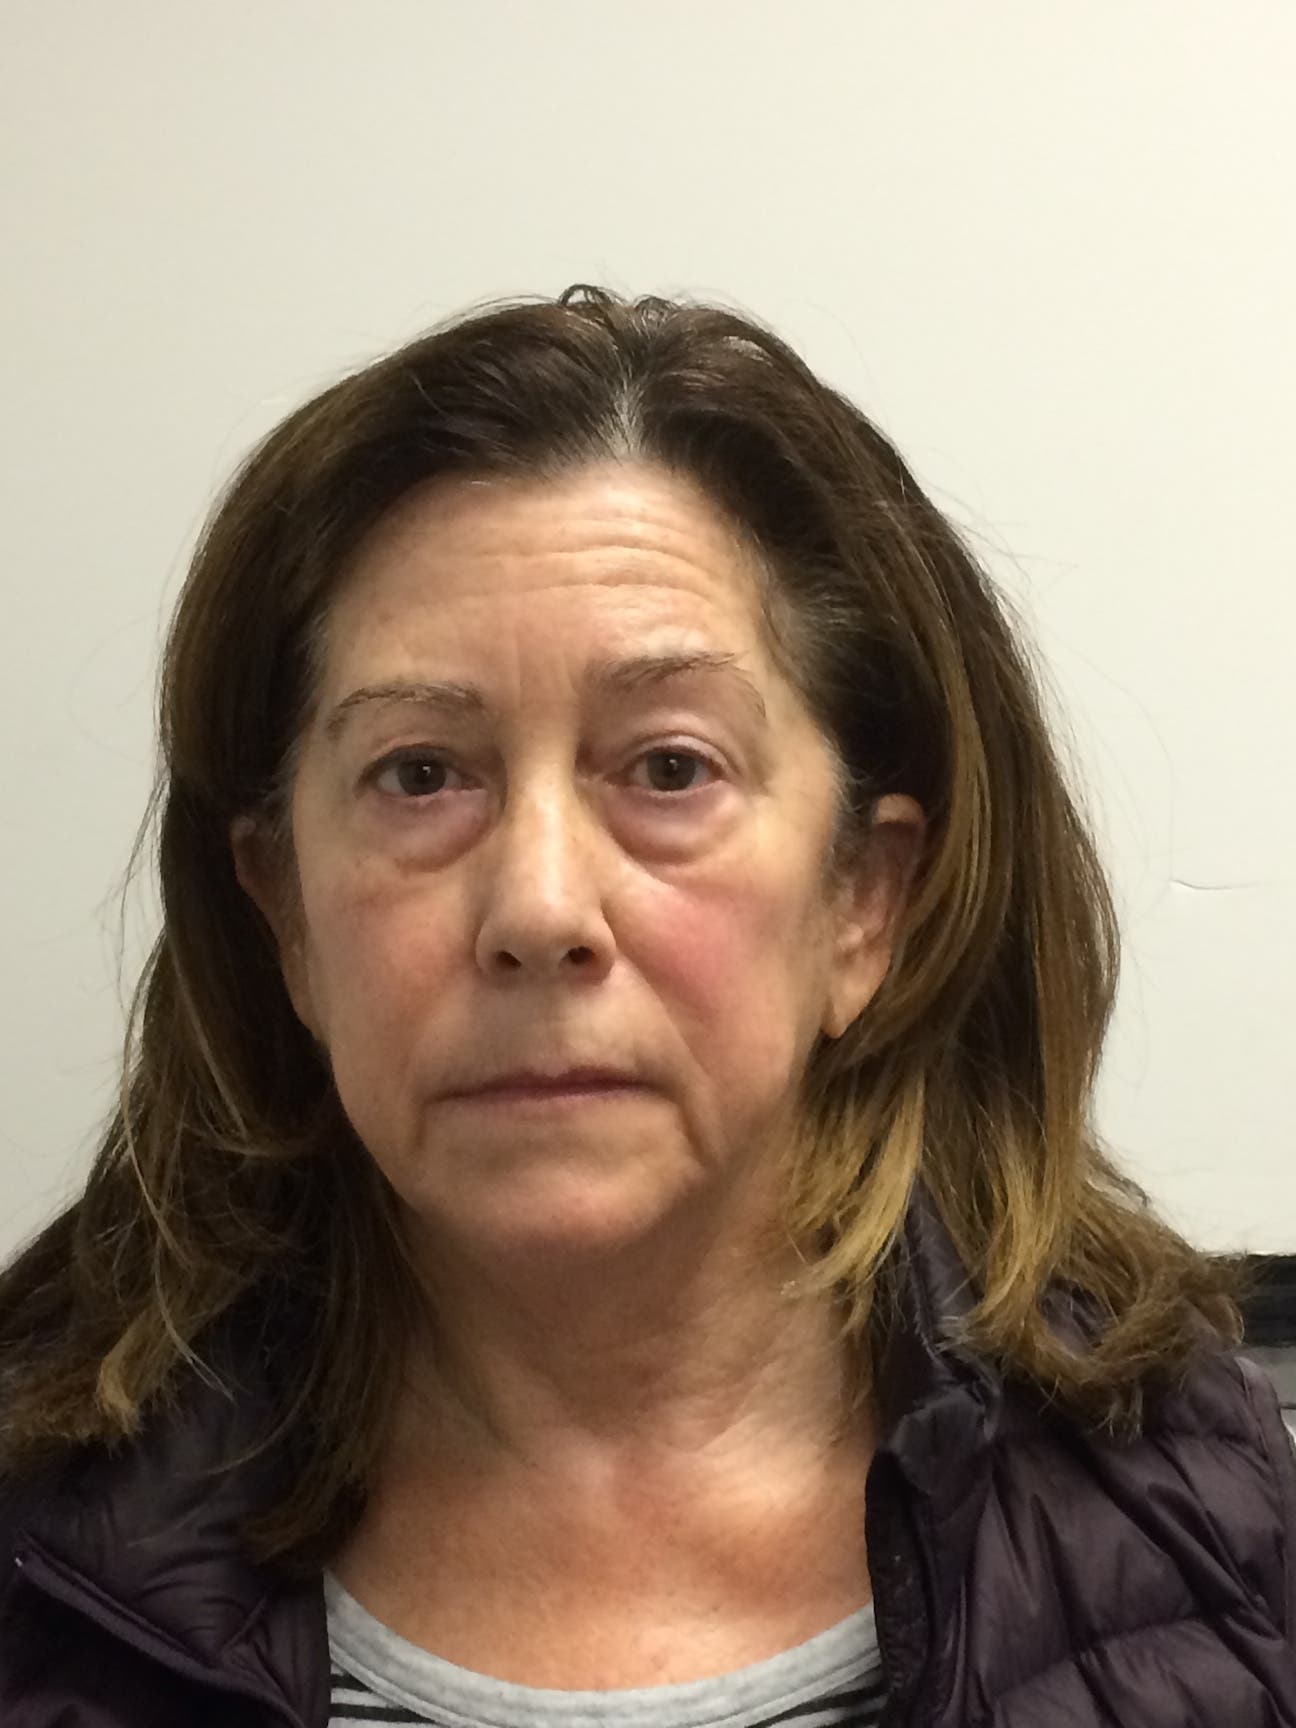 Port Washington Woman Lied About Income To Collect Food Stamps